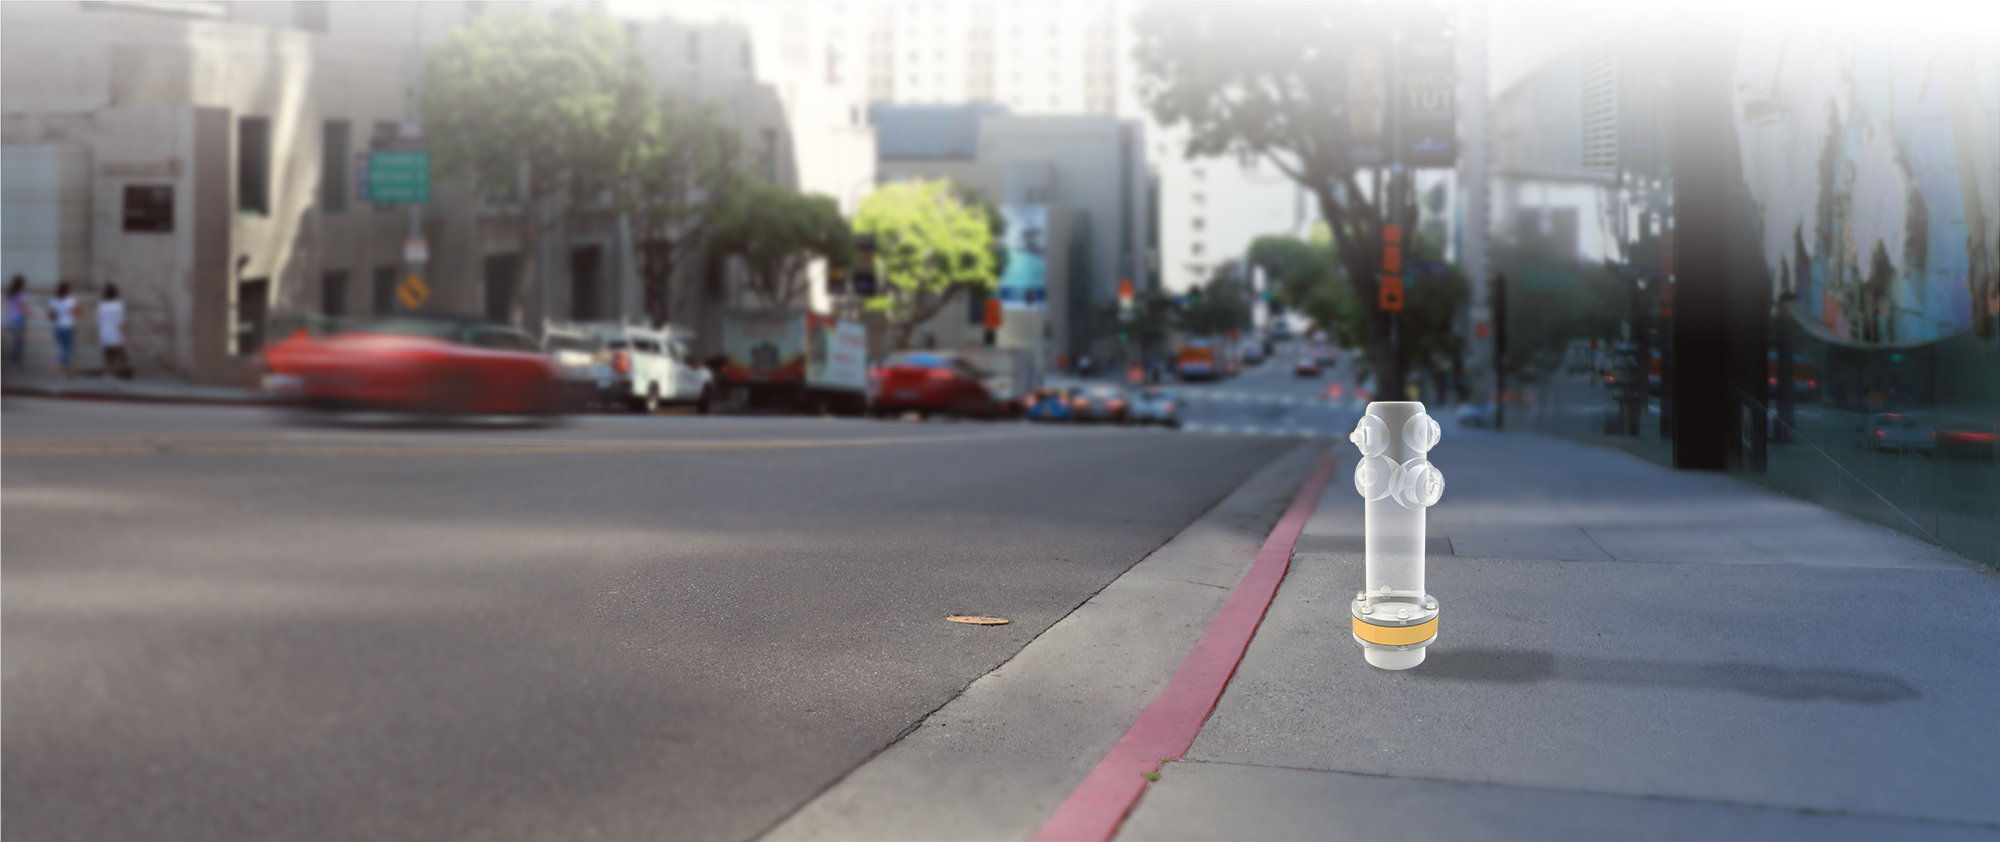 Hydrant Guard render on Los Angeles Street